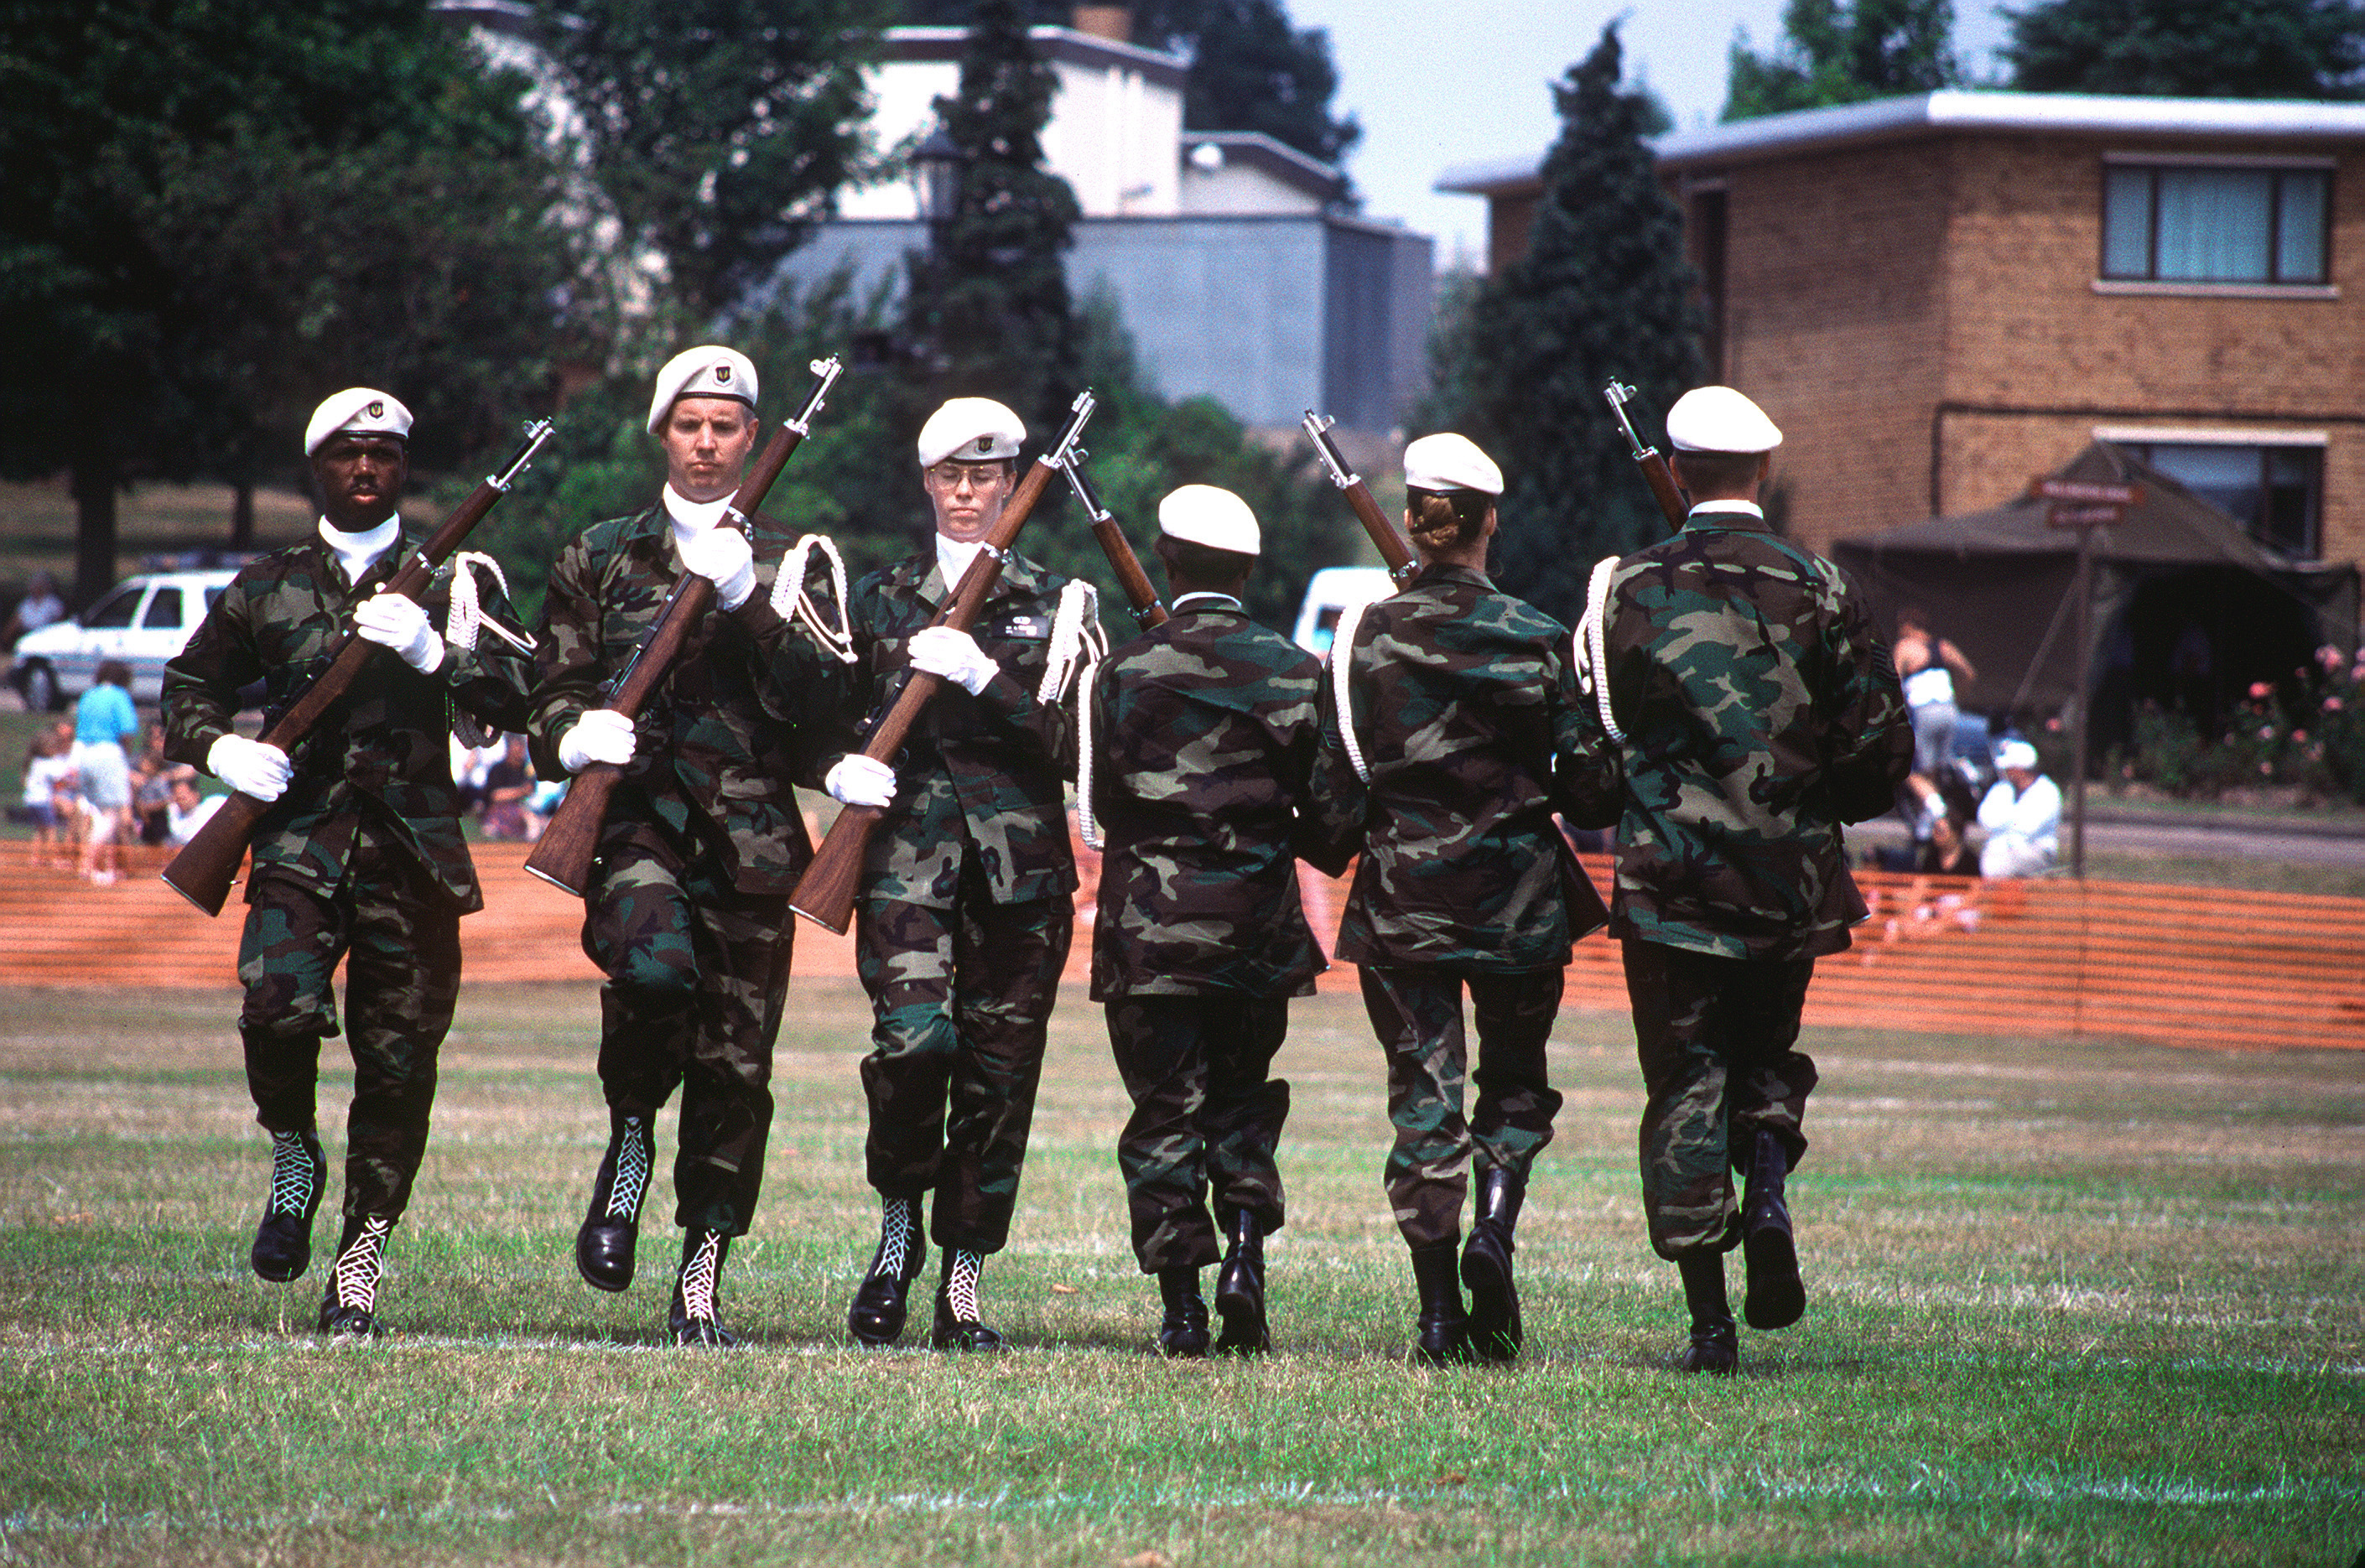 The RAF Chicksand's drill team performs precision drill movements for the spectators. RAF Chicksands hosts the most extravagant open house to date called the